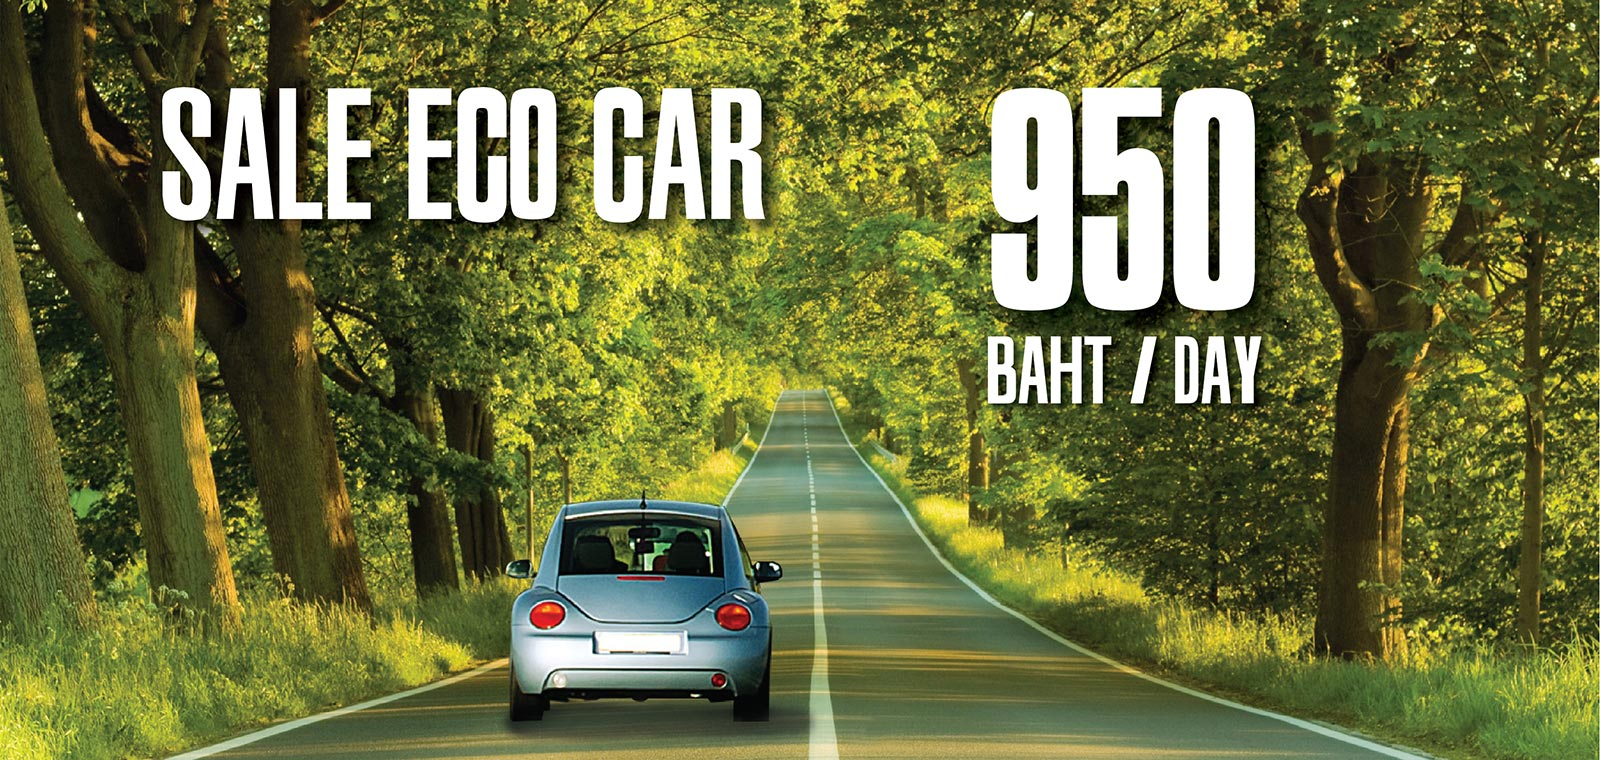 Promotions Asia Rent a Car